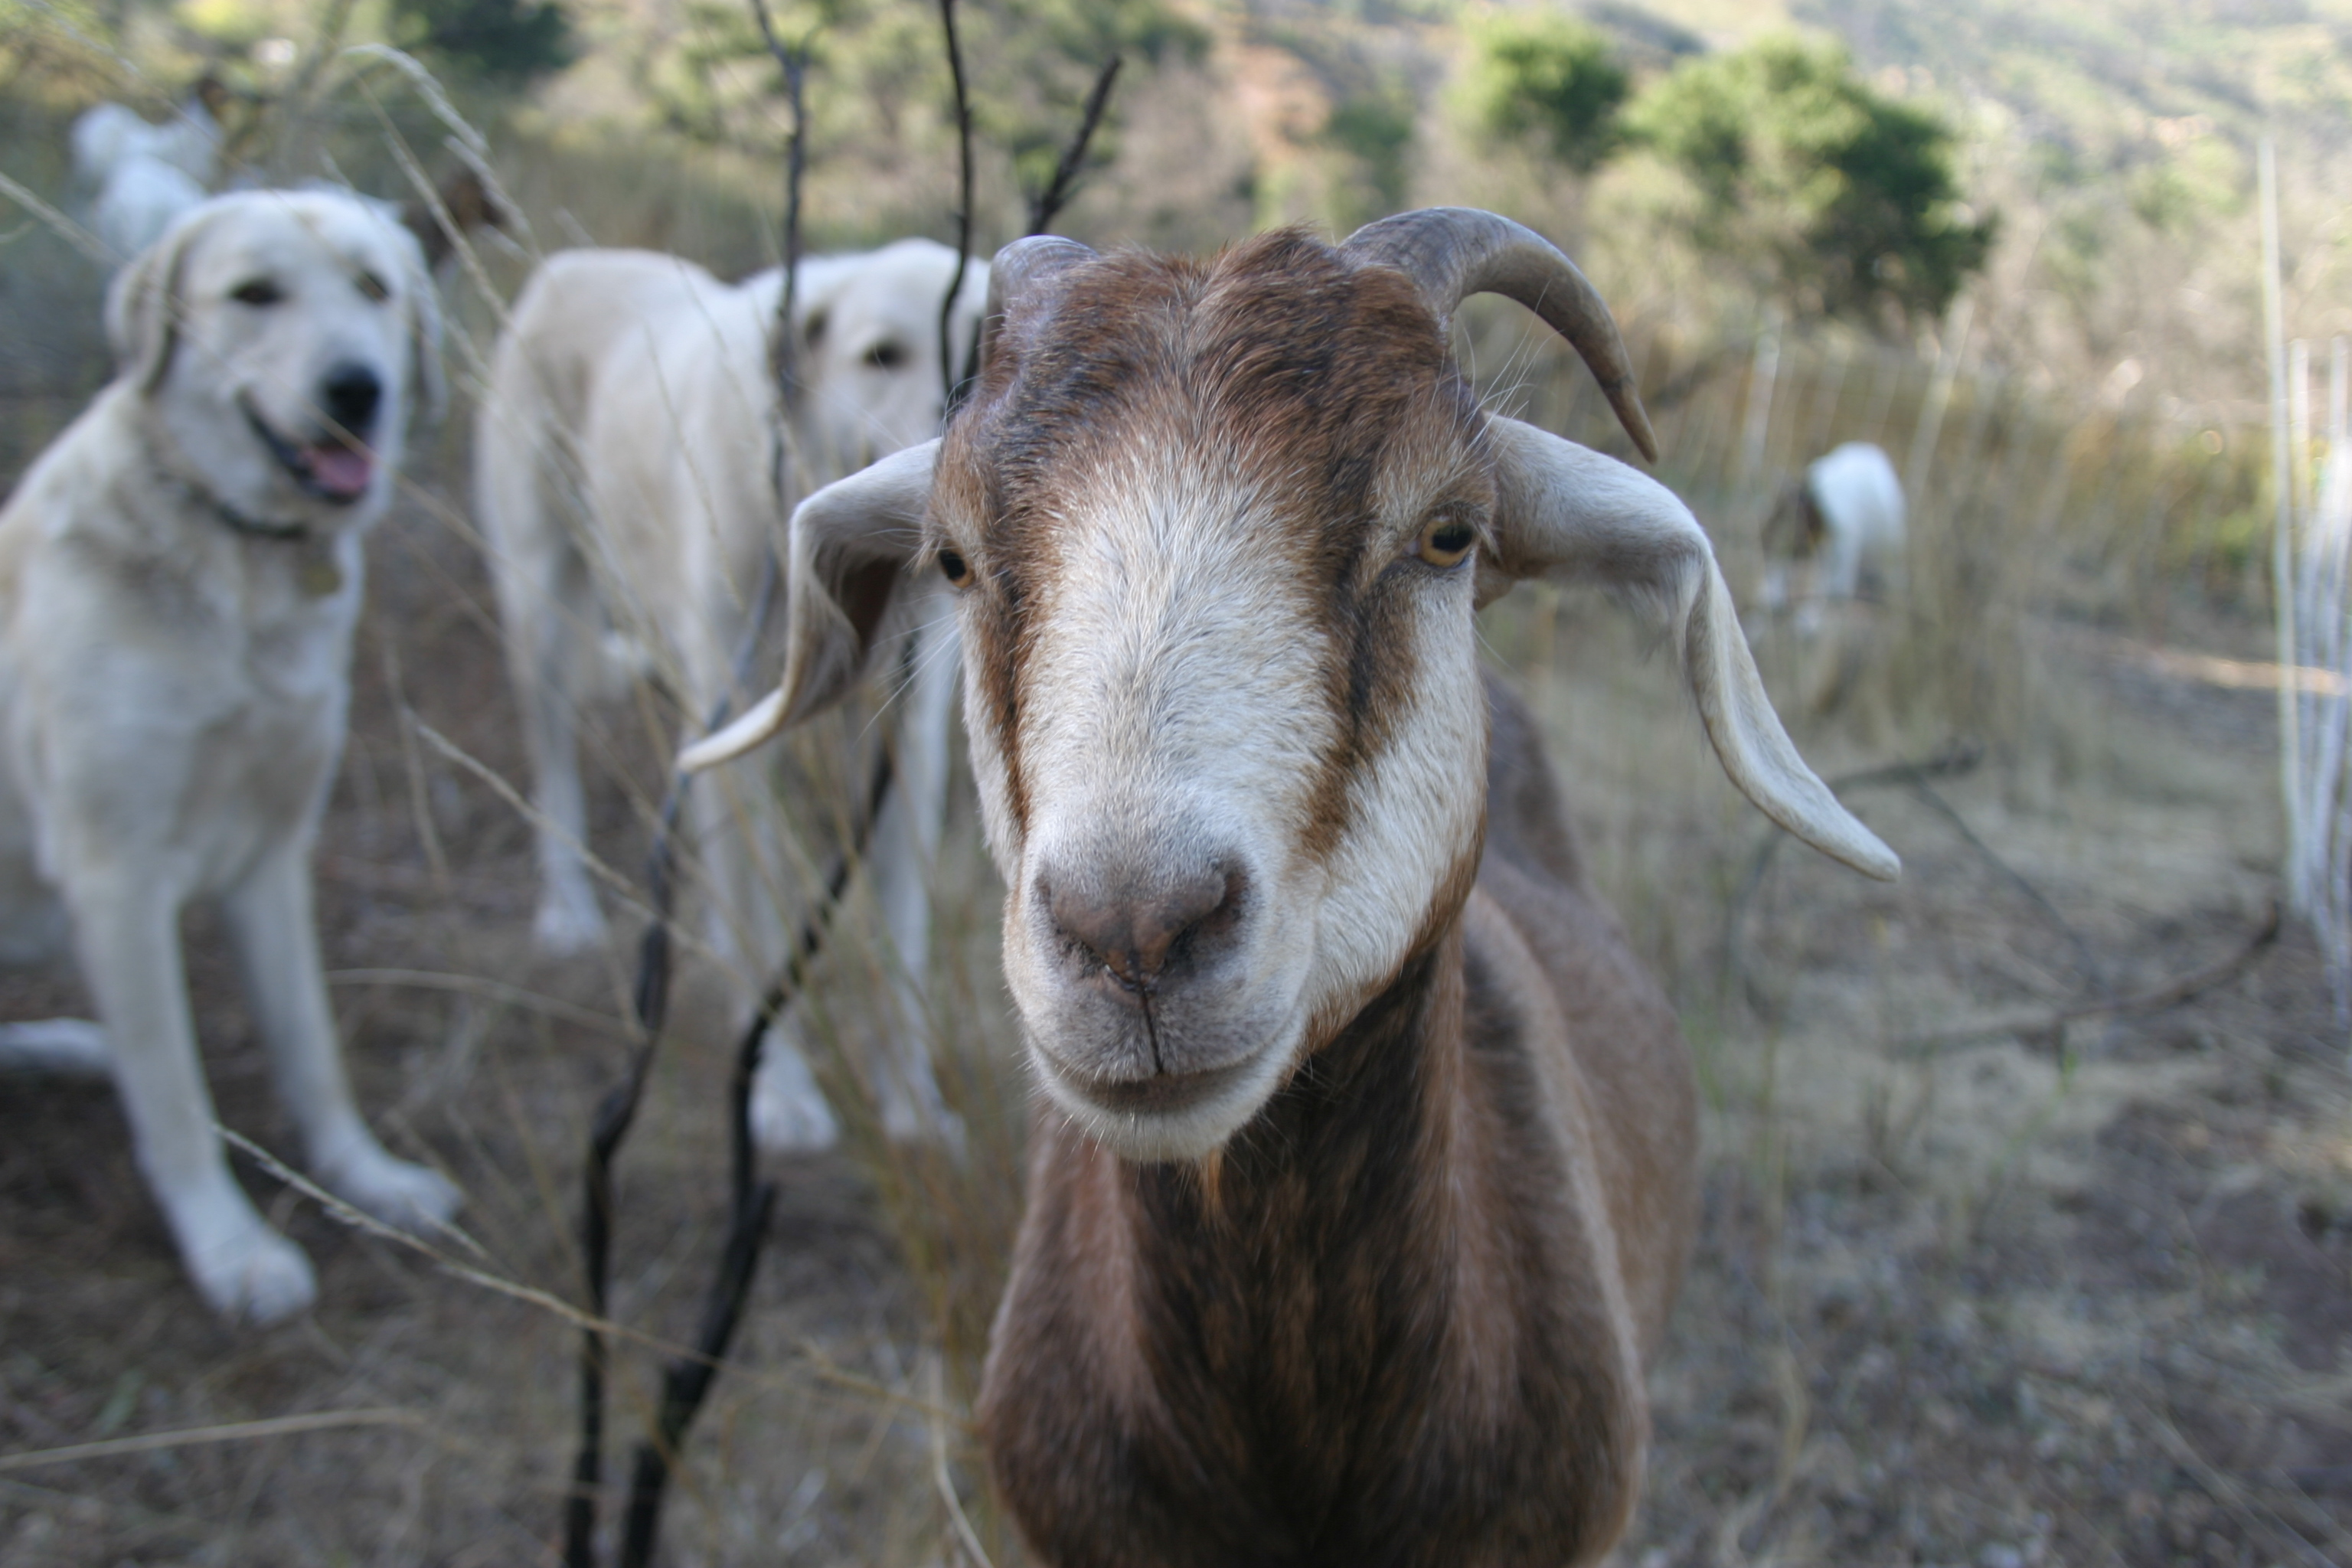 mission canyon assoc gives 10k brush goats 4 hire join us now